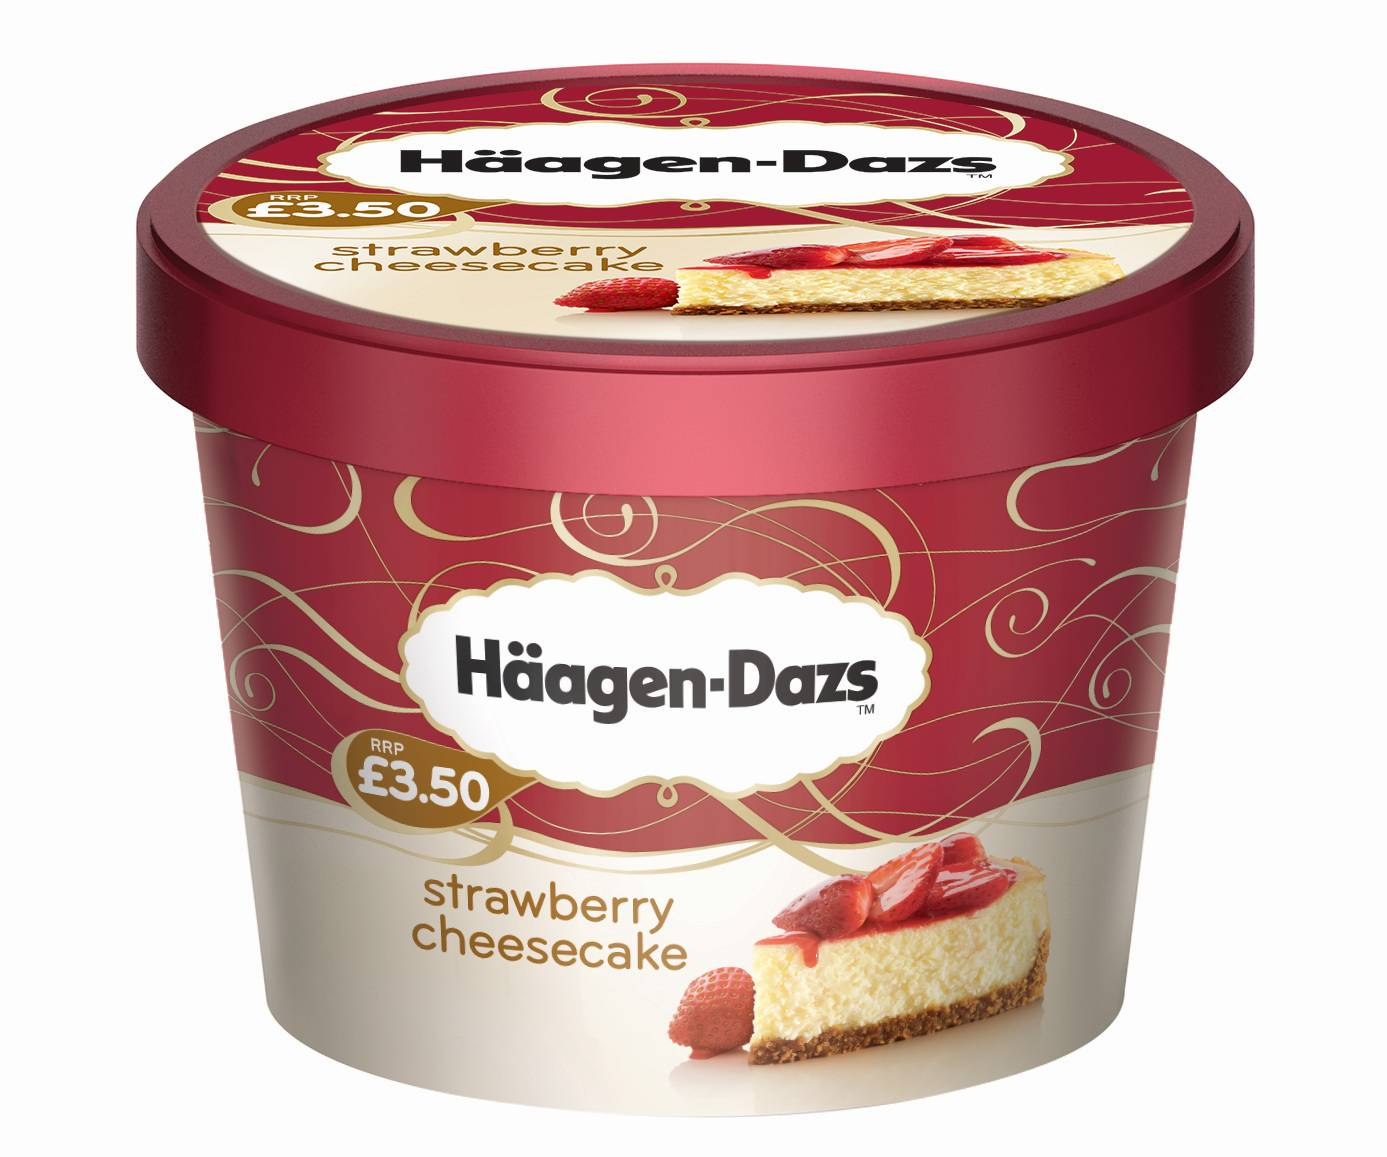 haagen dazs Häagen-dazs, middle east and north africa 43m likes discover the häagen-dazs luxury ice-cream experience in the middle east and north africa for.